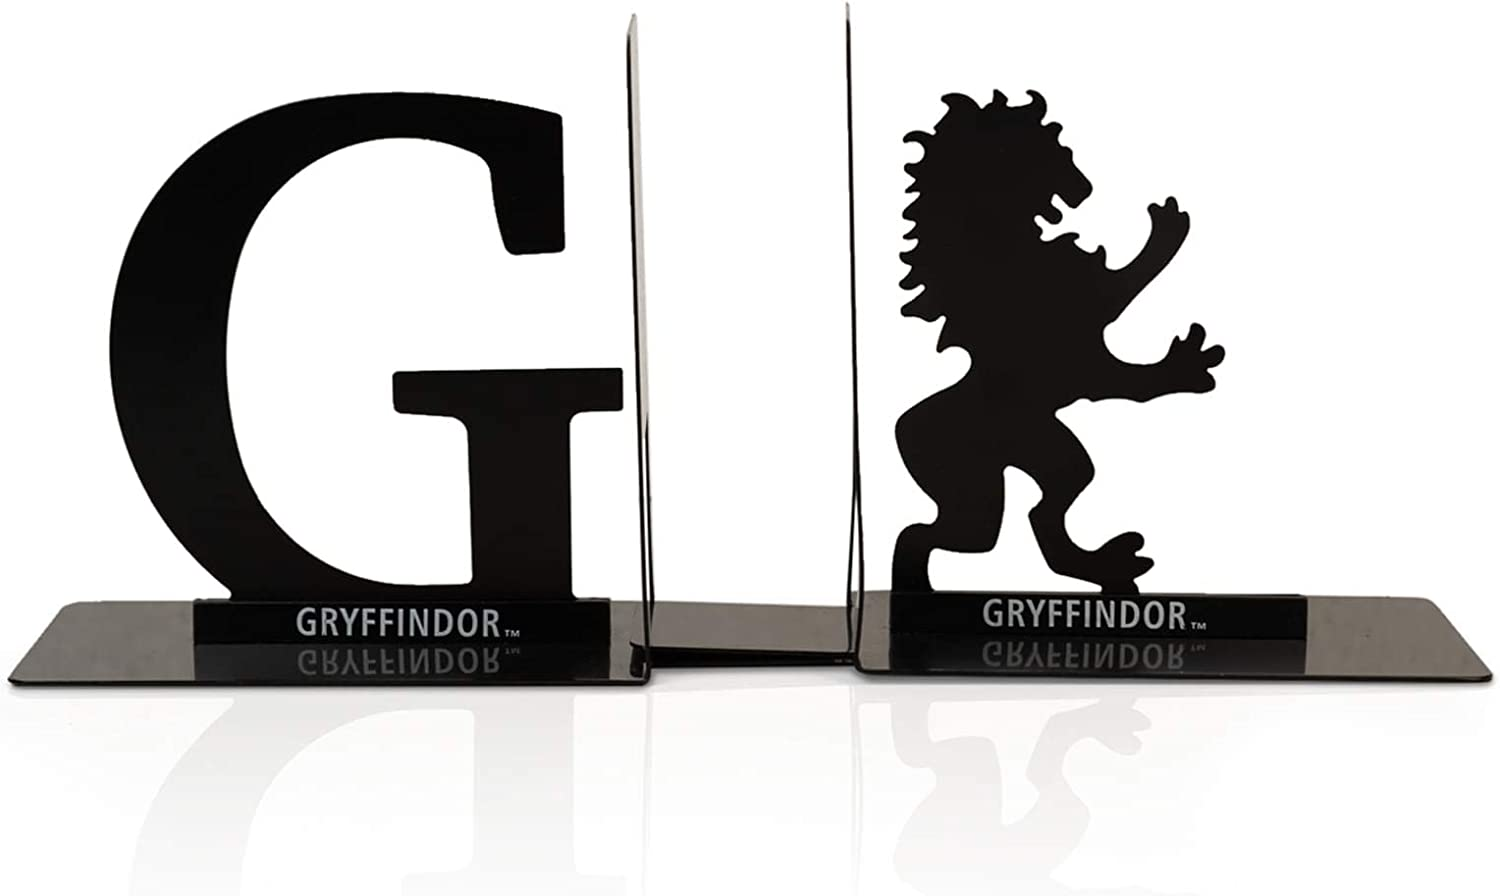 Harry Potter Metal Bookends - Black Hogwarts House Gryffindor Diecast Design - Decorative Book Holder - Home, Office, Kitchen, Room Decor - Books Collection Display For Shelves - Desk Accessories Set